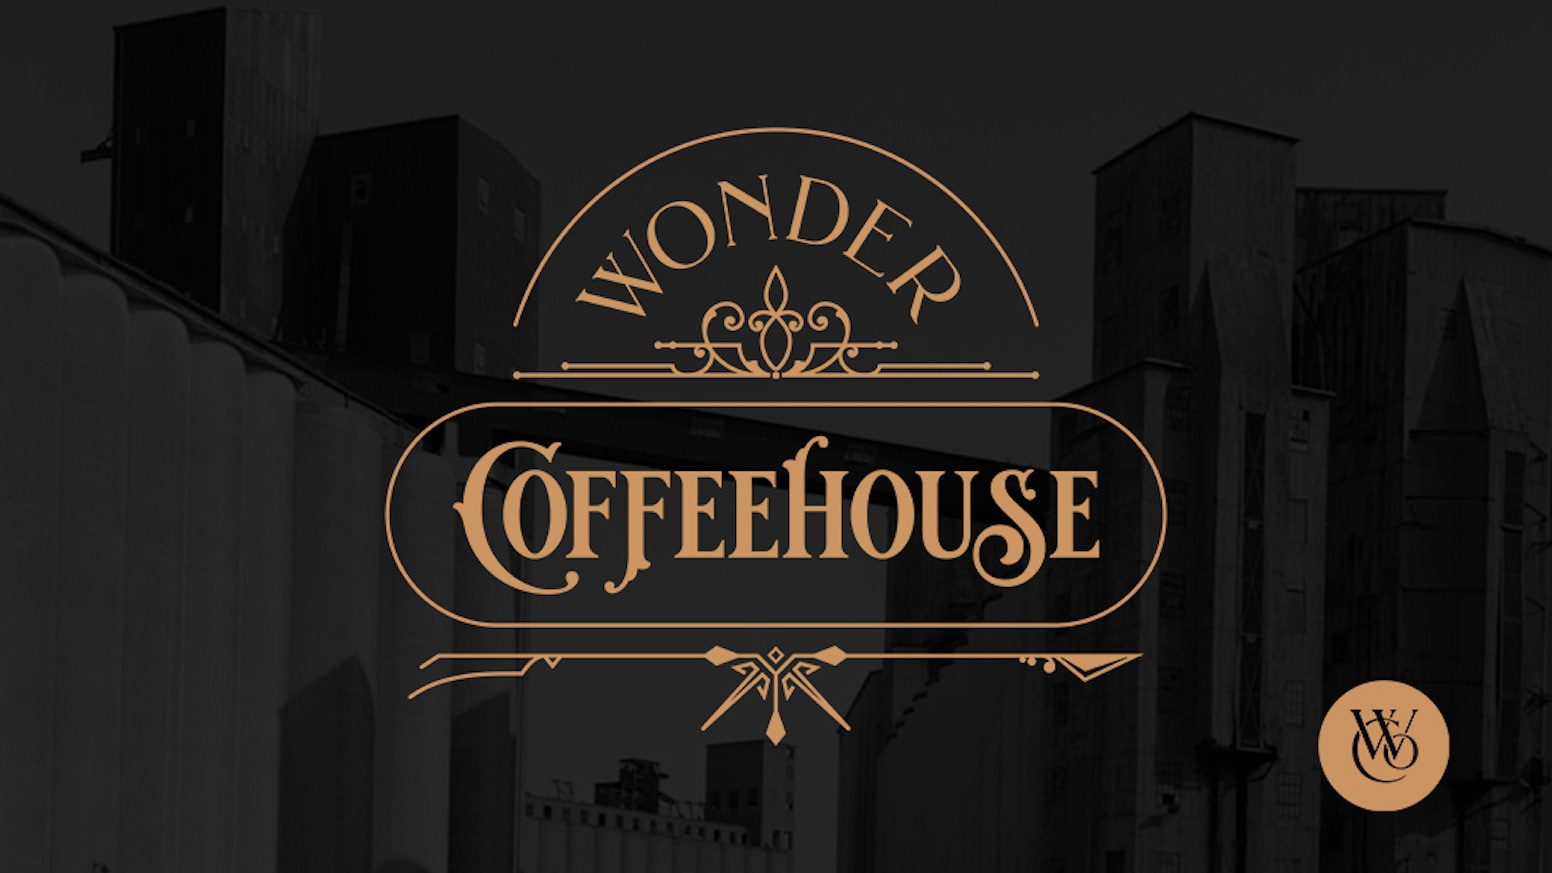 A new inspirational coffeehouse in downtown Buffalo. Helping the city of good neighbors rebuild and restore.